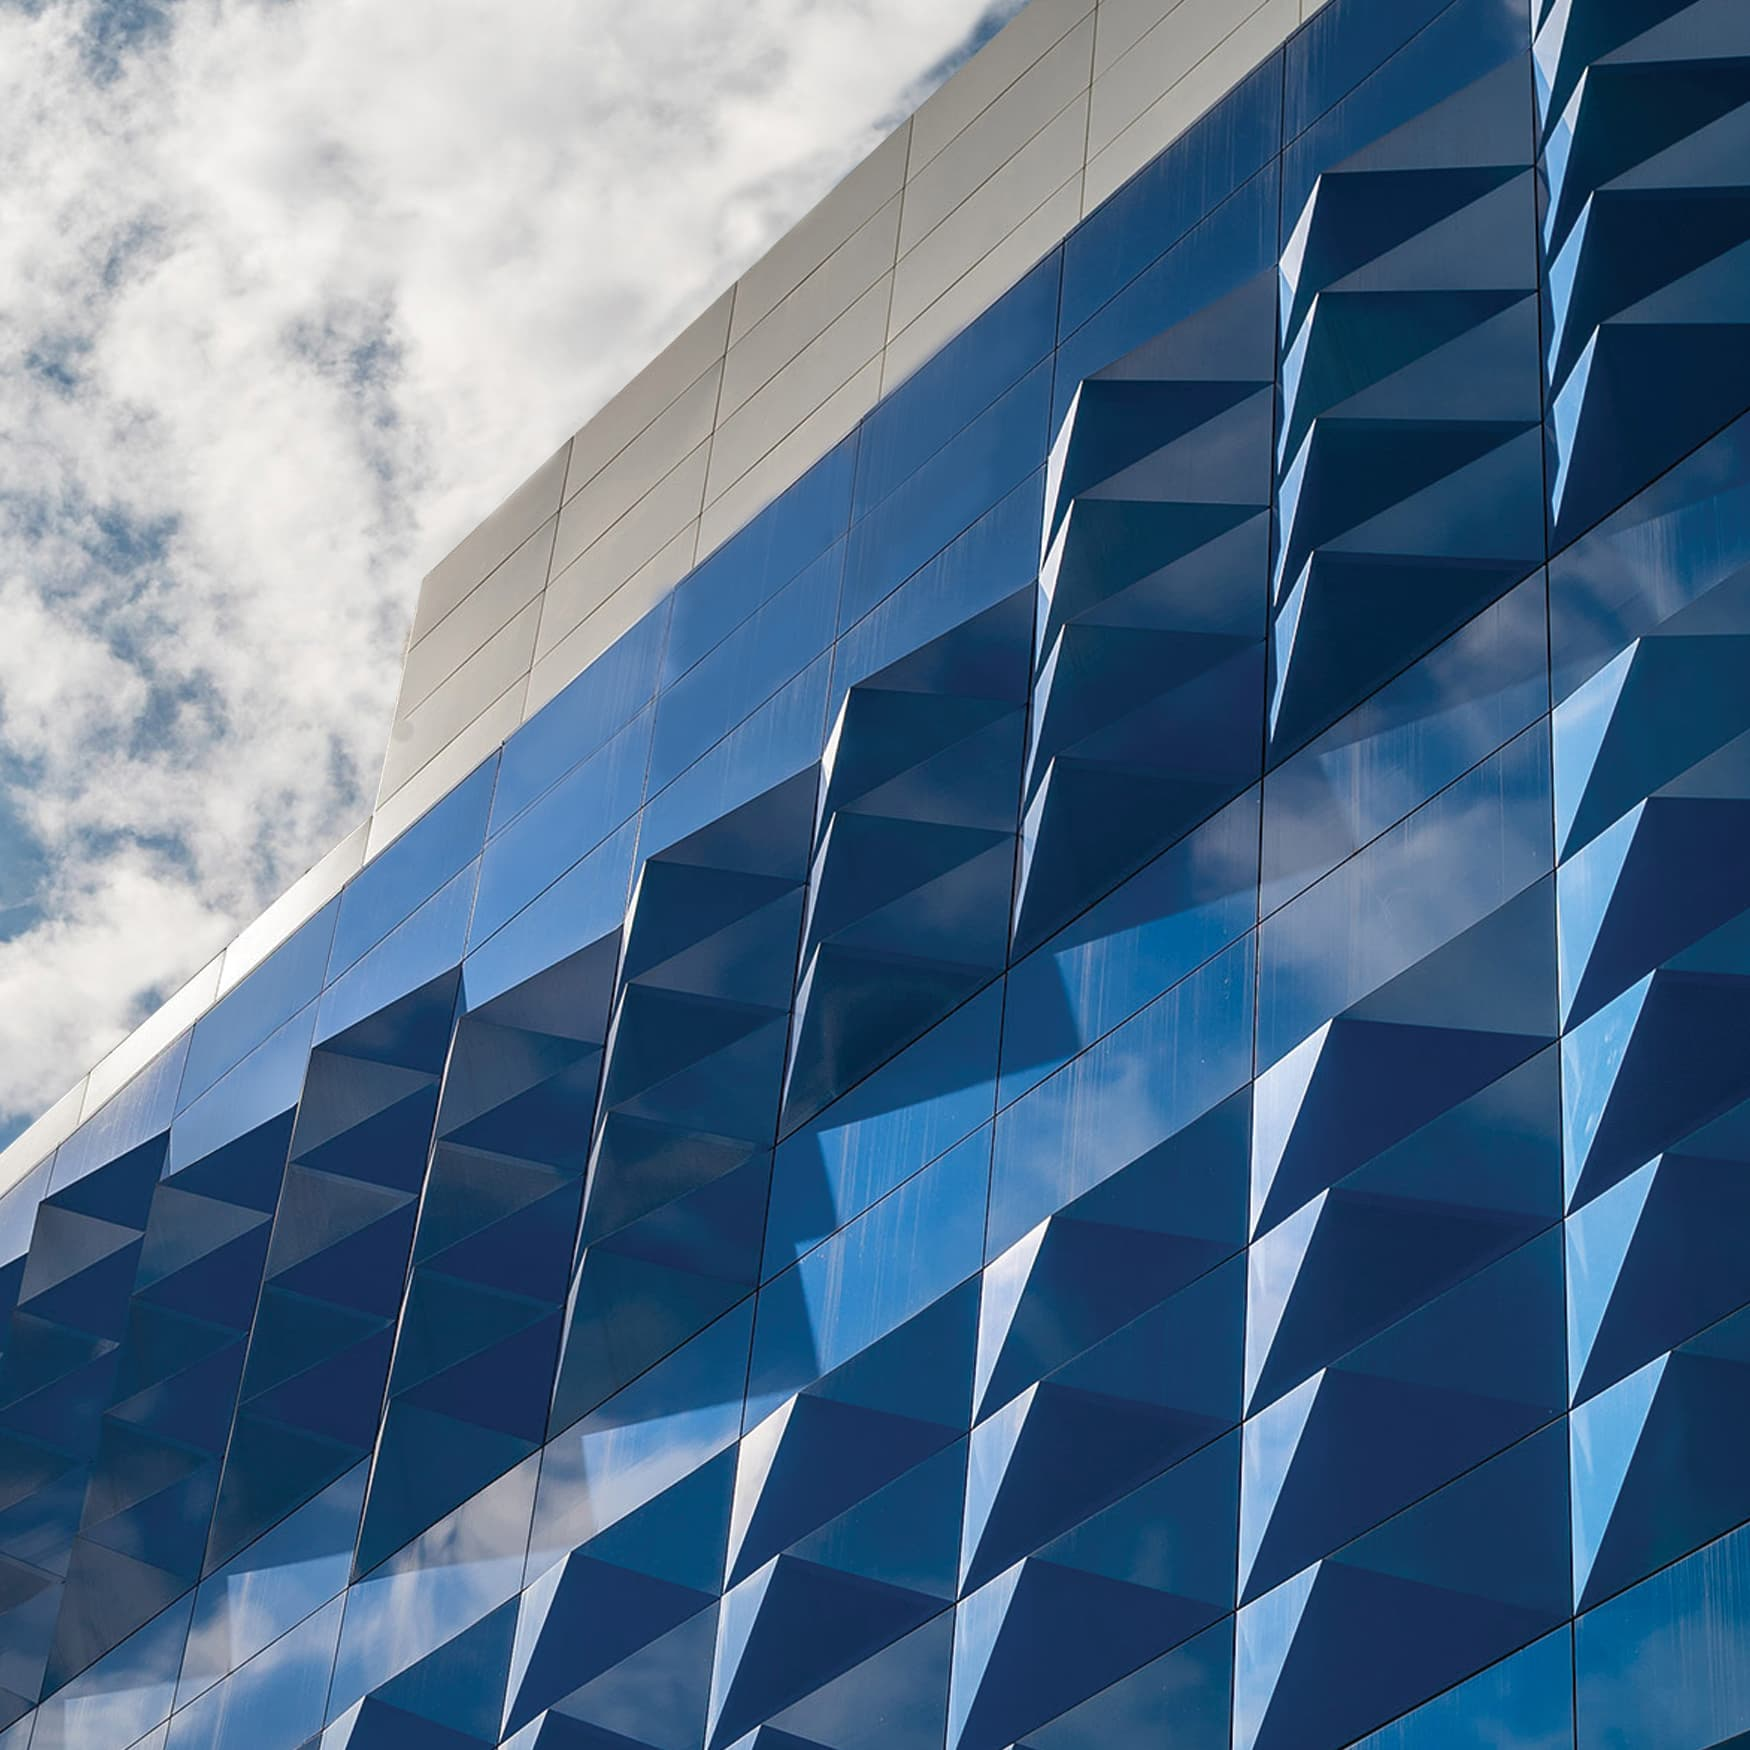 Geometric building facade design in reflective blue with clouds in the sky